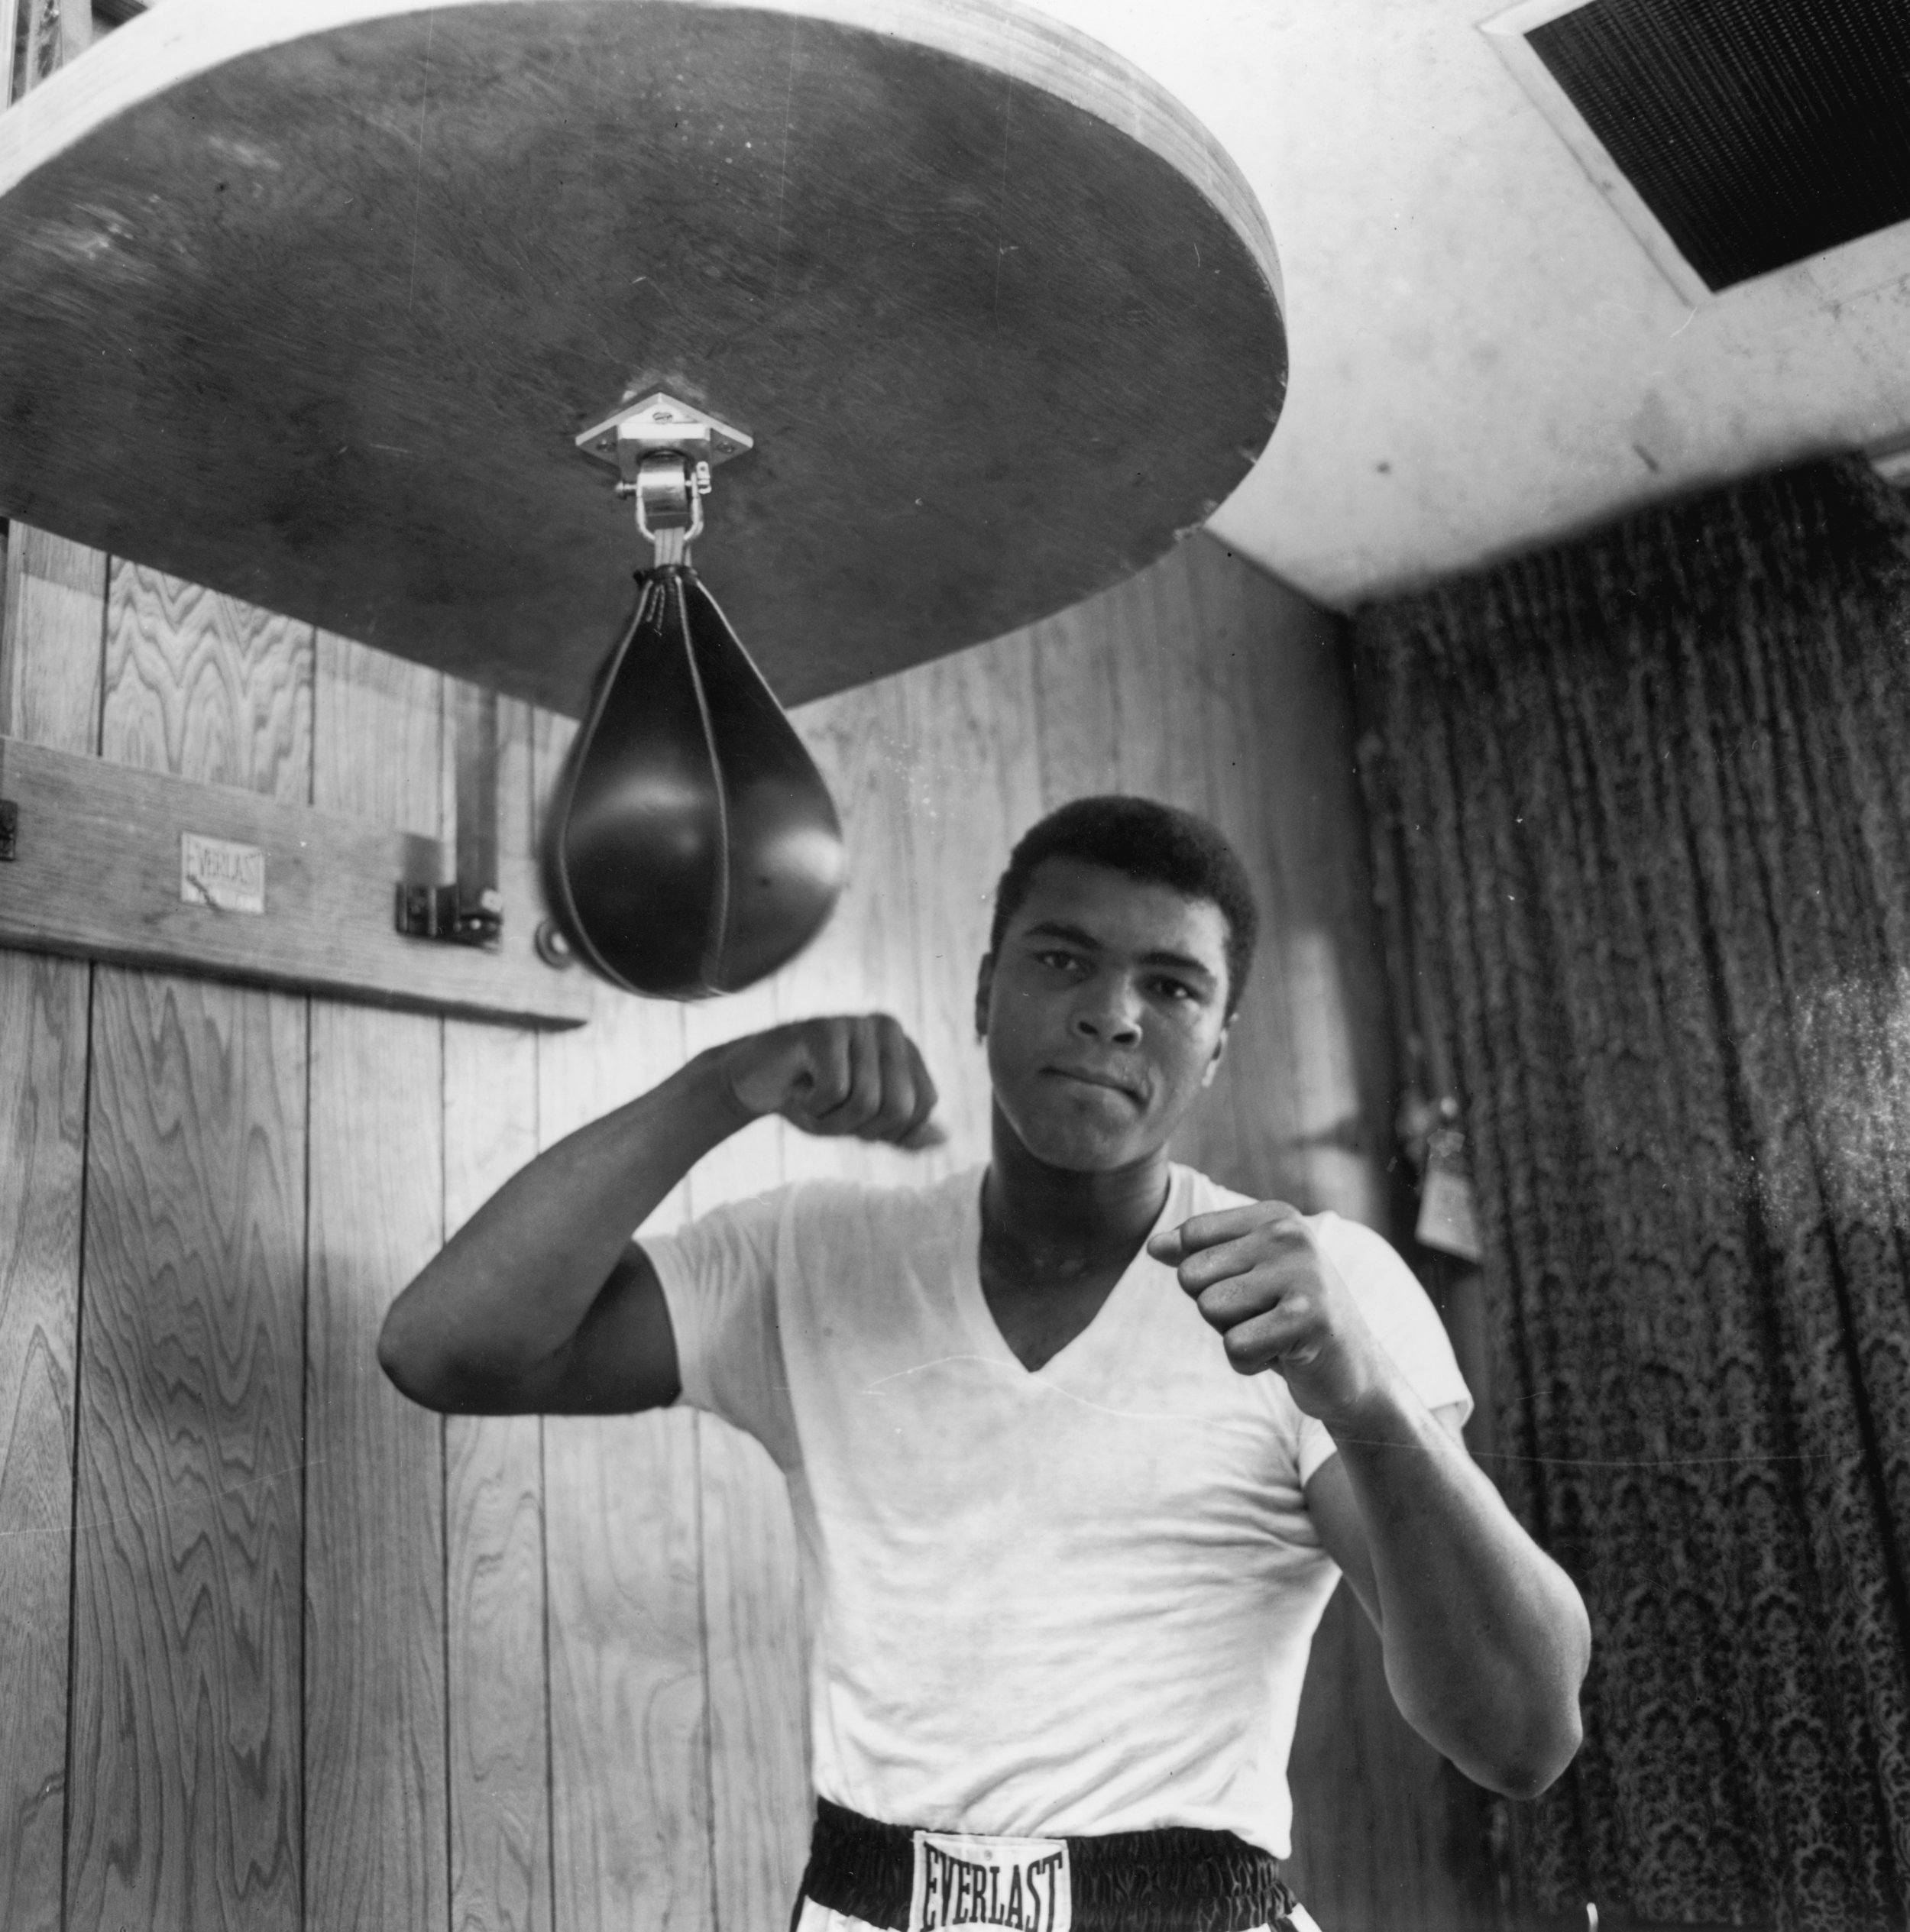 Former world heavyweight champion Muhammad Ali.